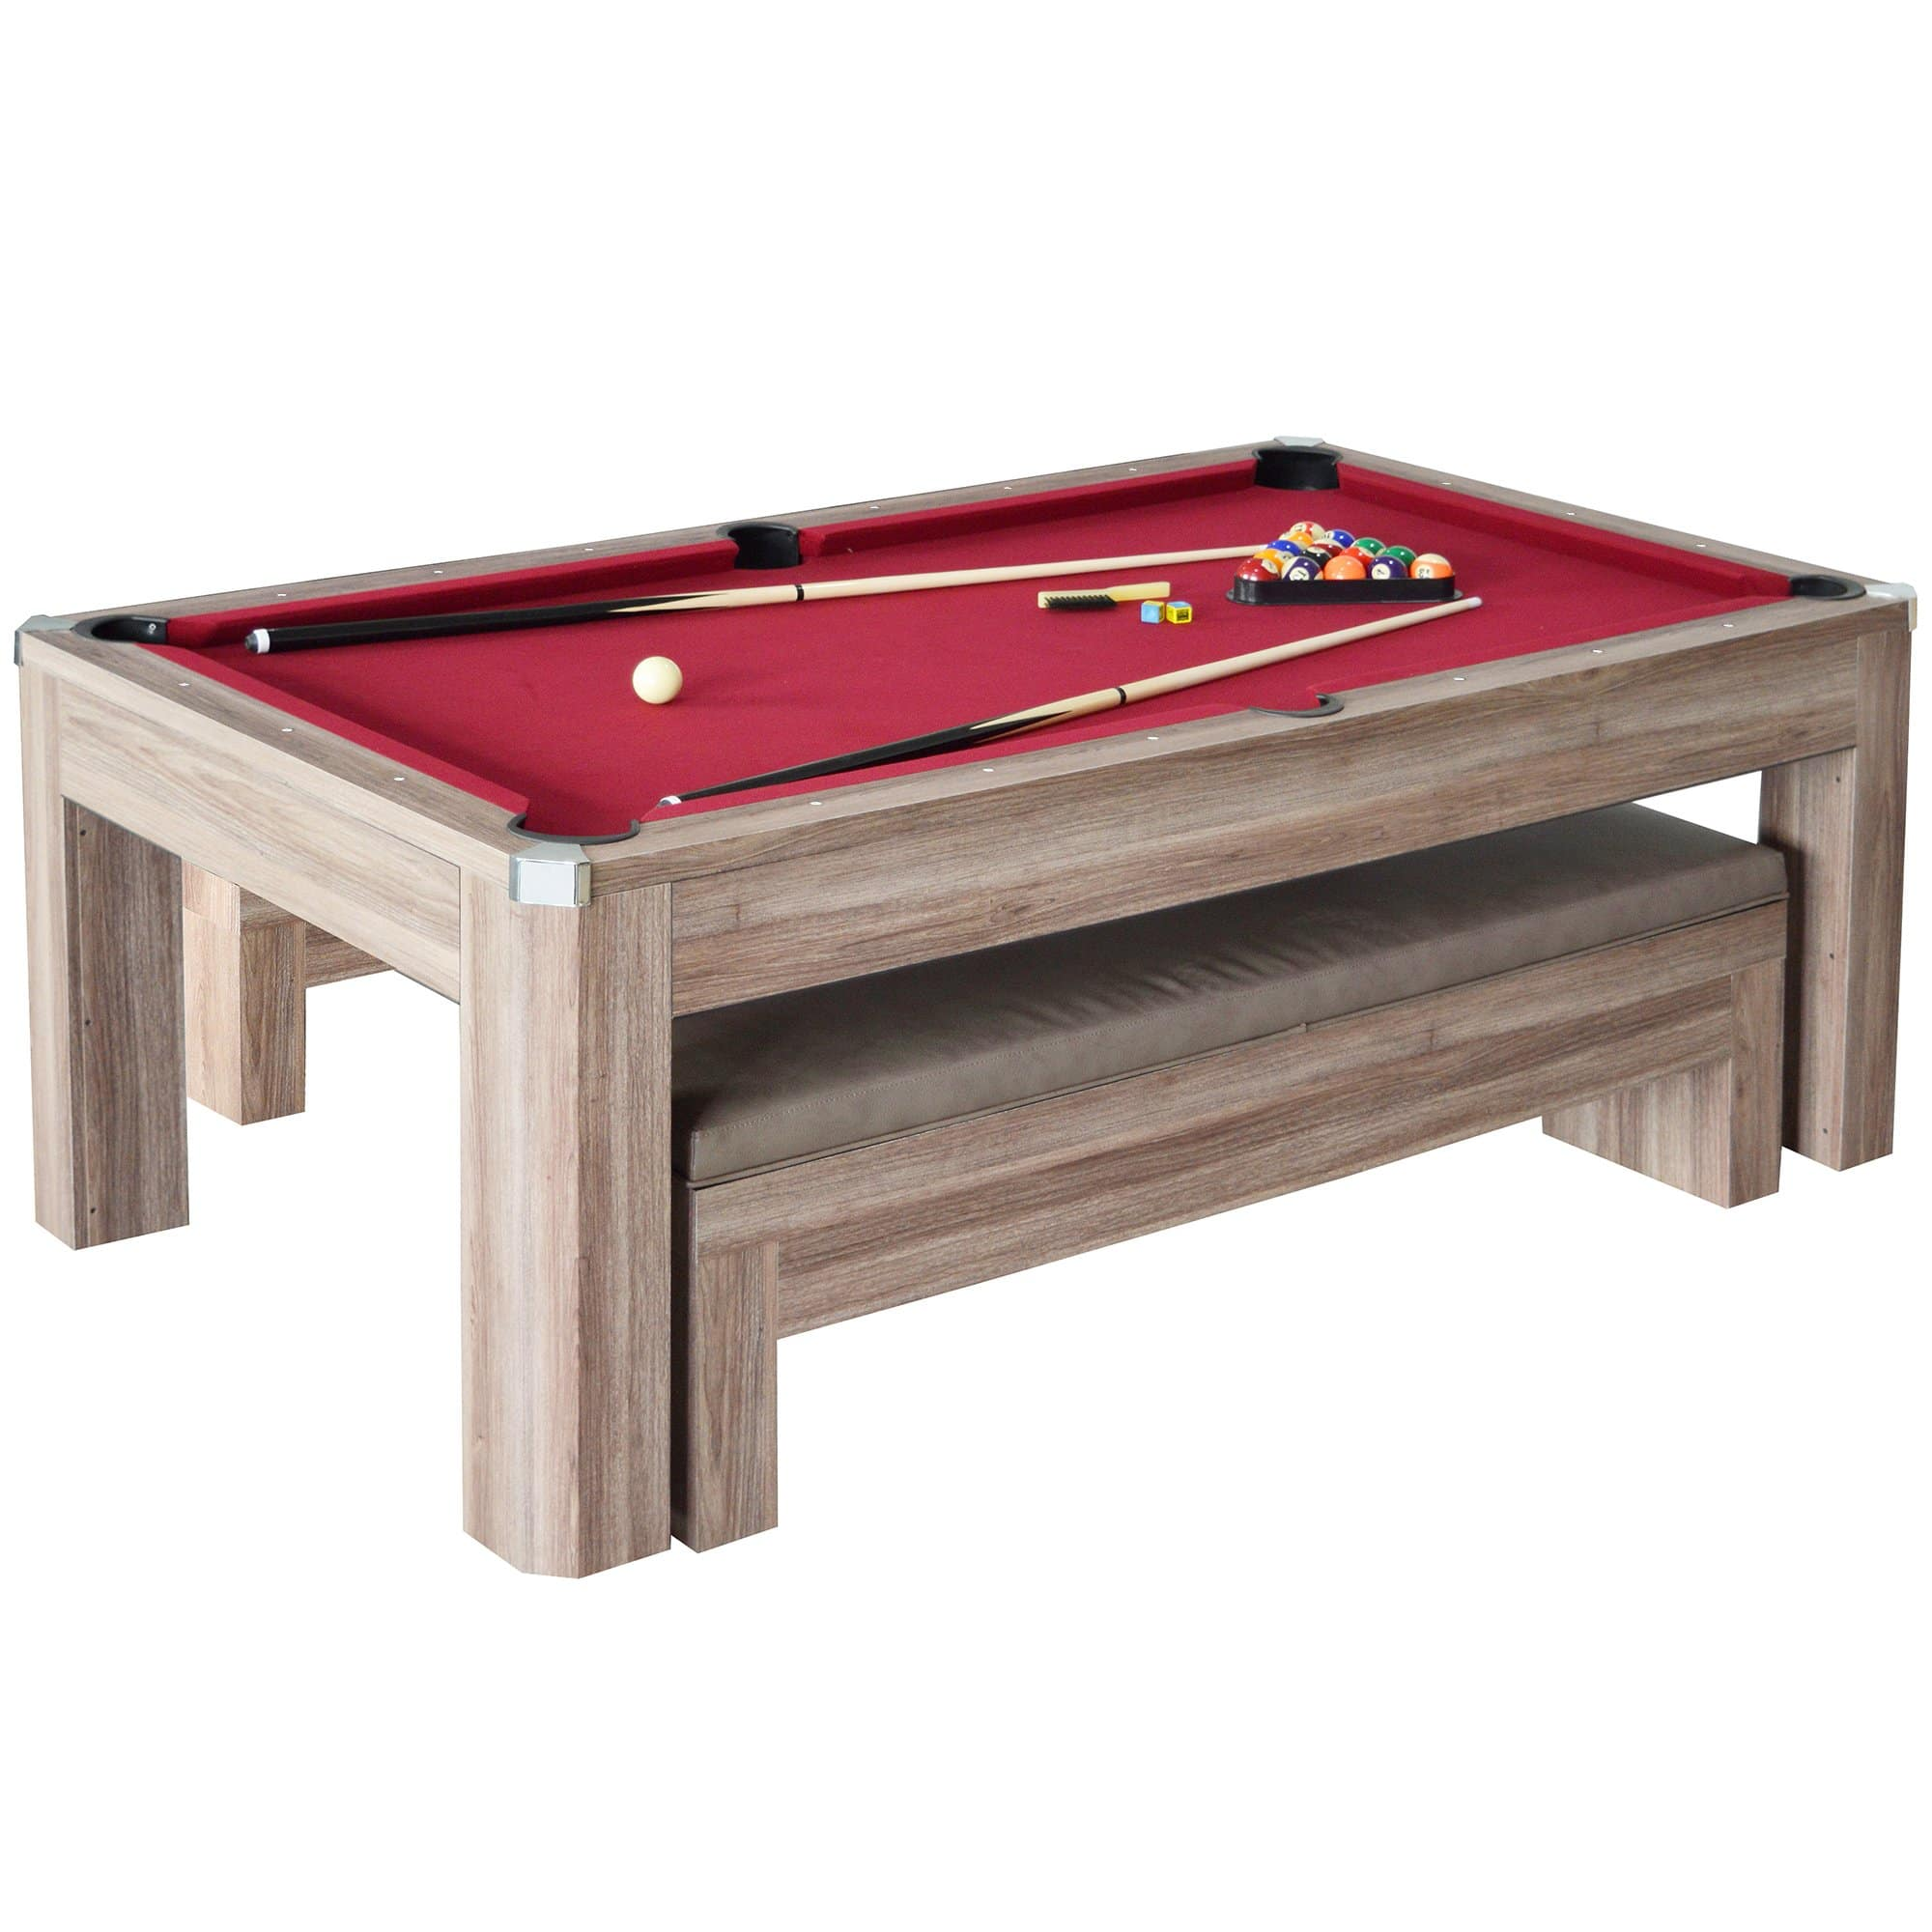 Newport Ft Pool Table Combo Set With Benches Pool Warehouse - Pool table seating